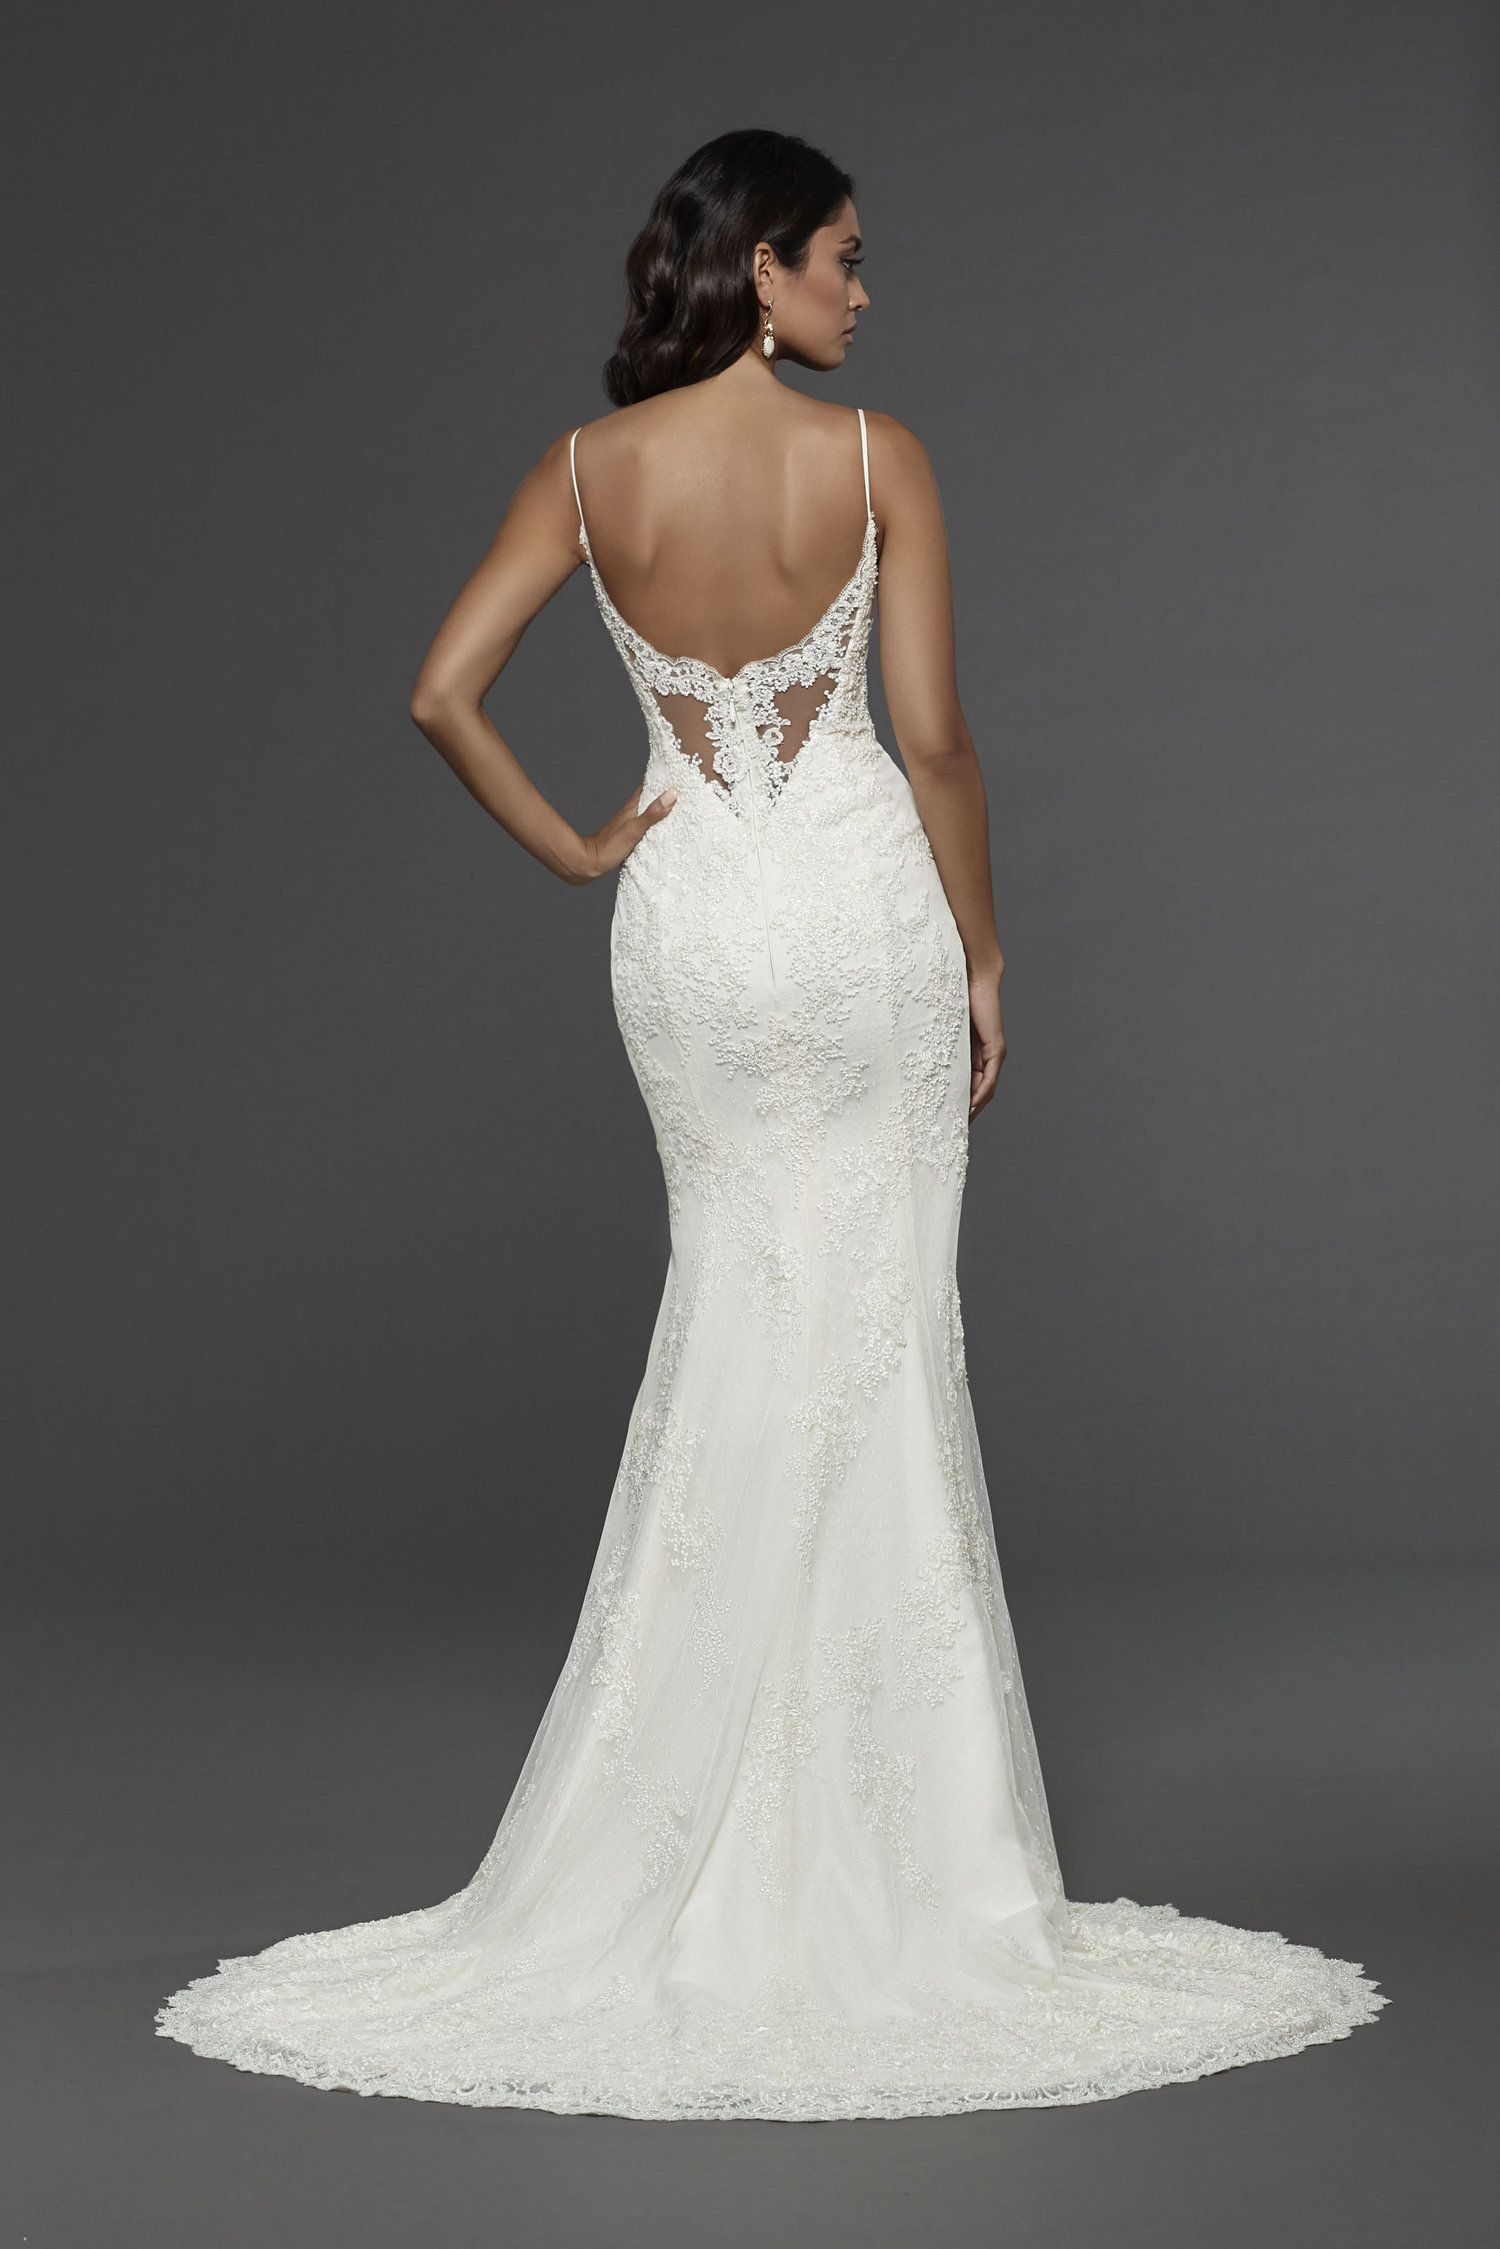 Truly Forever Bridal Wedding Dresses in Tampa and Sarasota